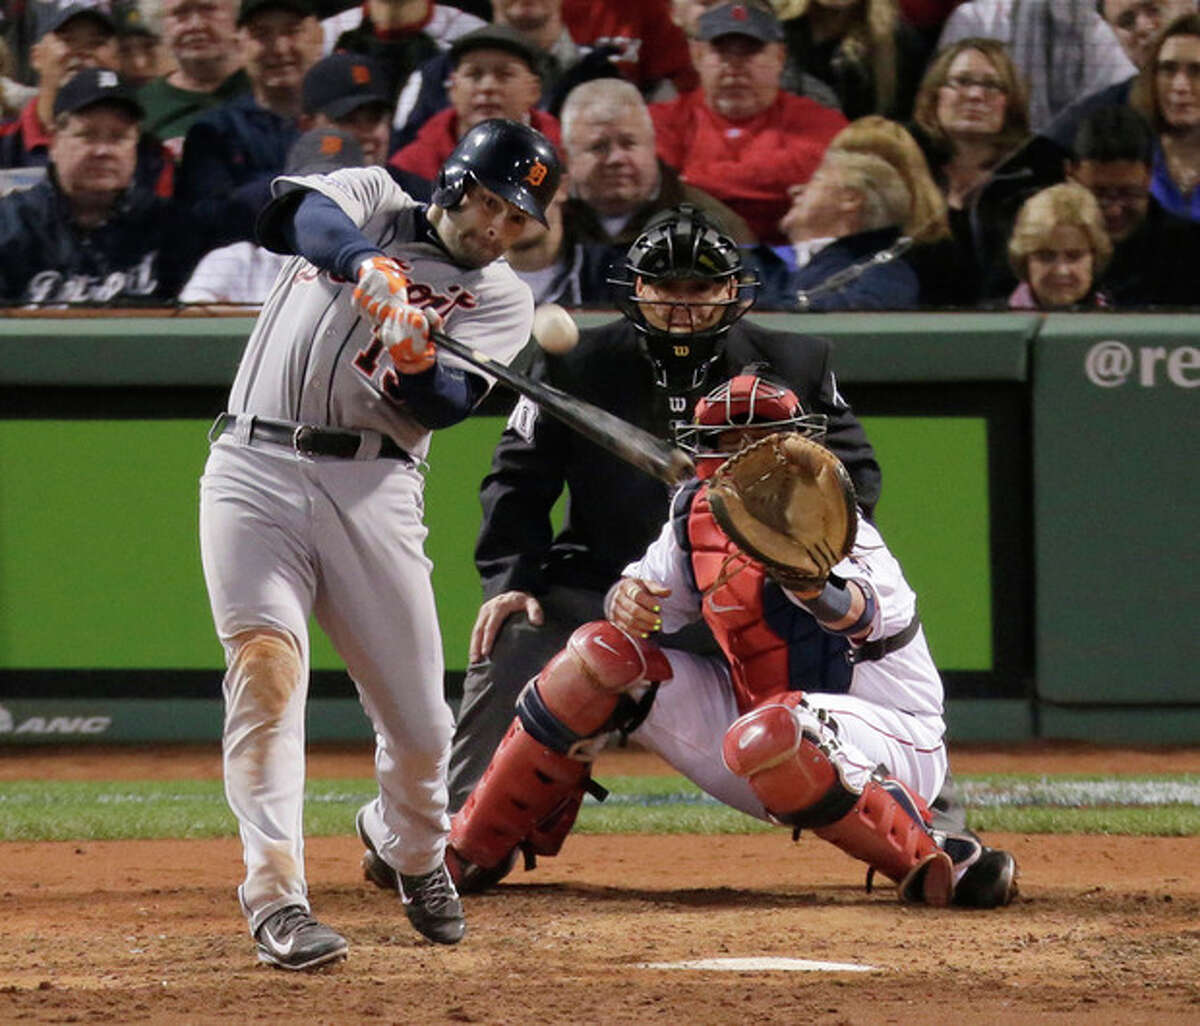 Detroit Tigers' Alex Avila hits a two-run home run during Game 2 of the American League baseball championship series against the Boston Red Sox Sunday, Oct. 13, 2013, in Boston. (AP Photo/Charlie Riedel)